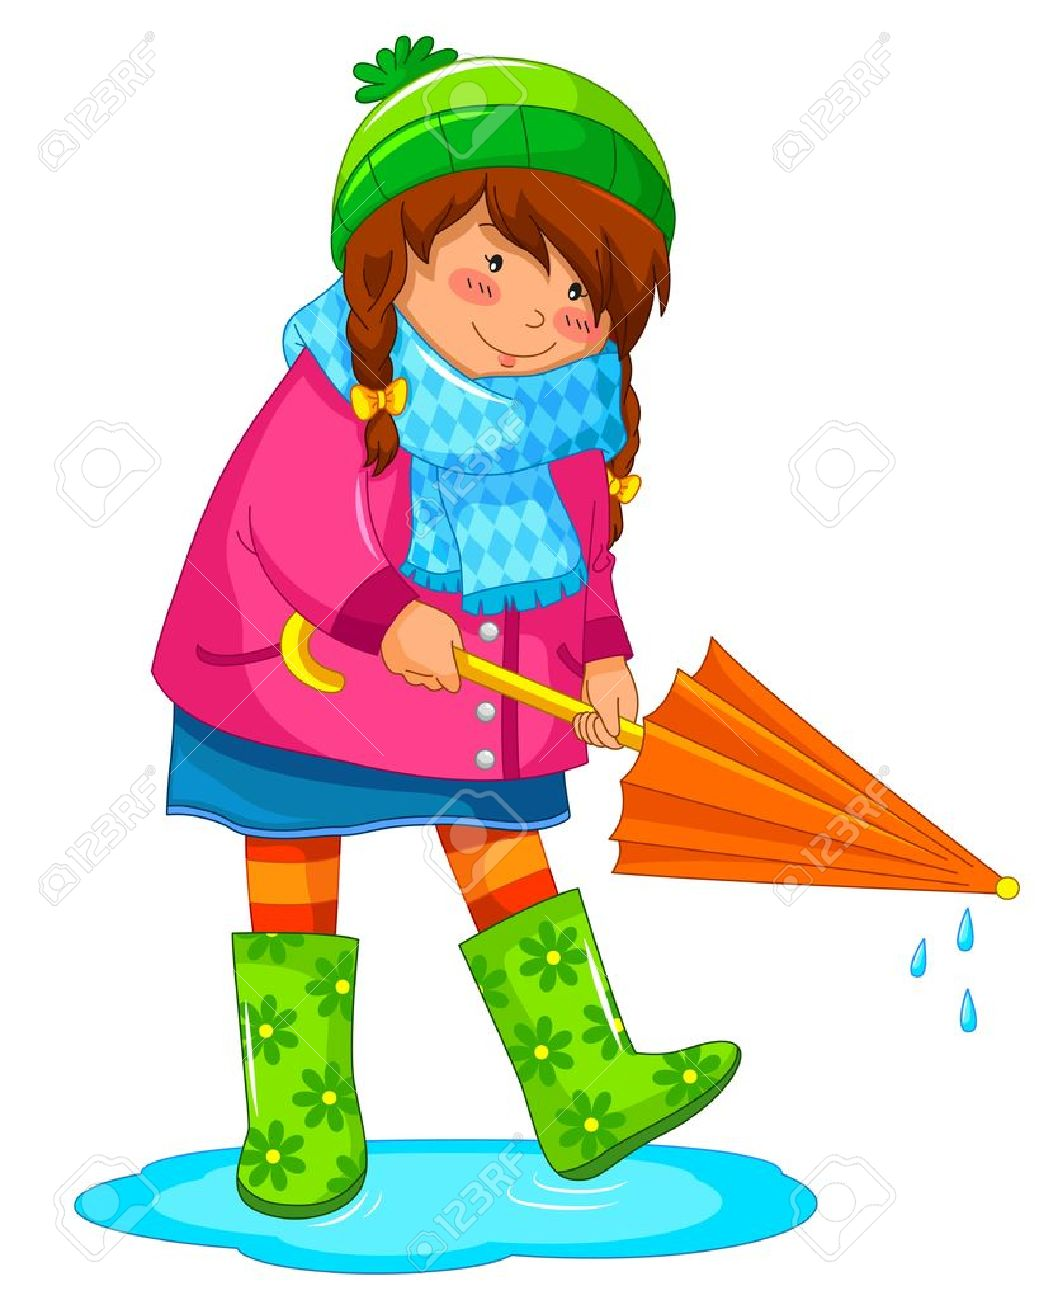 1039x1300 Girl With Umbrella Standing In A Puddle Royalty Free Cliparts